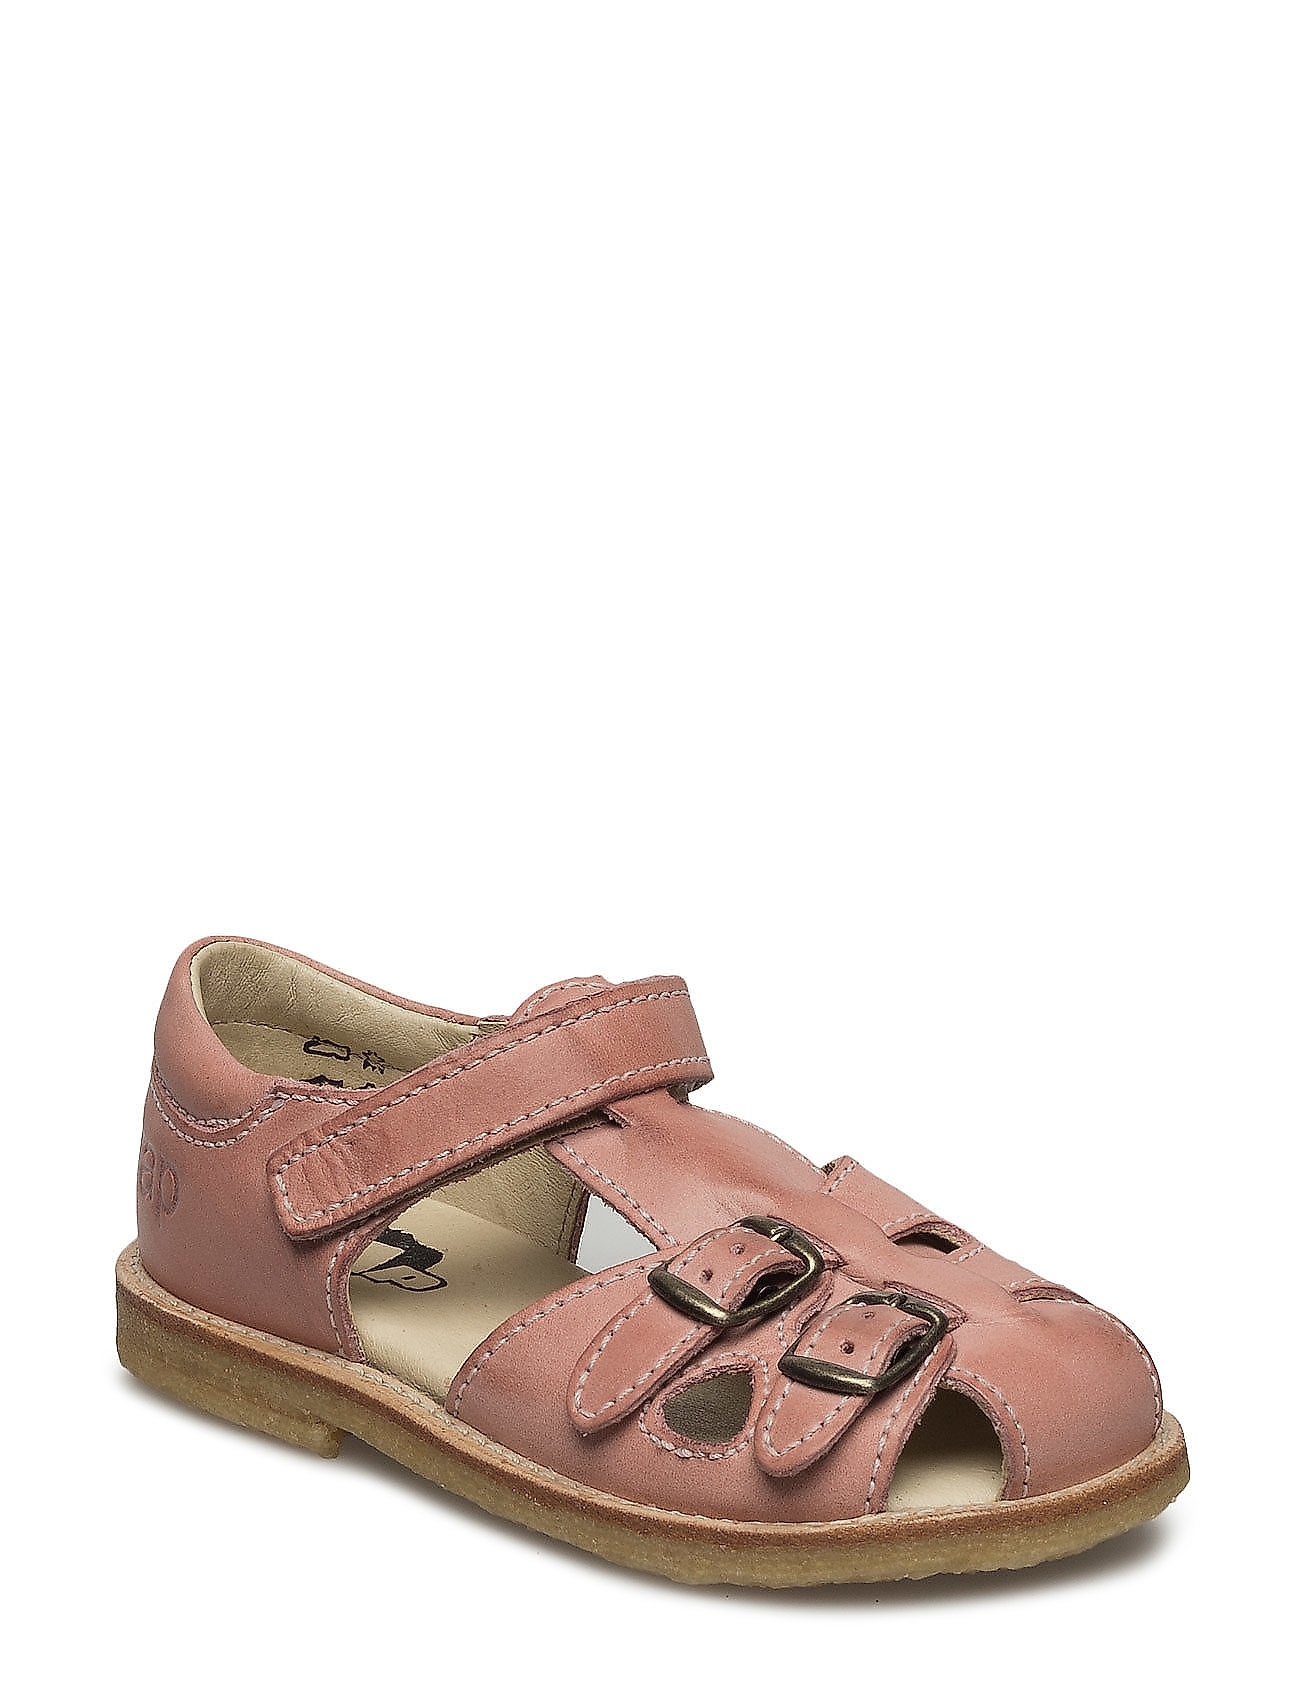 ARAUTO RAP Ecological Closed Retro Sandal, Medium/Wide Fit Sandaler Rosa ARAUTO RAP